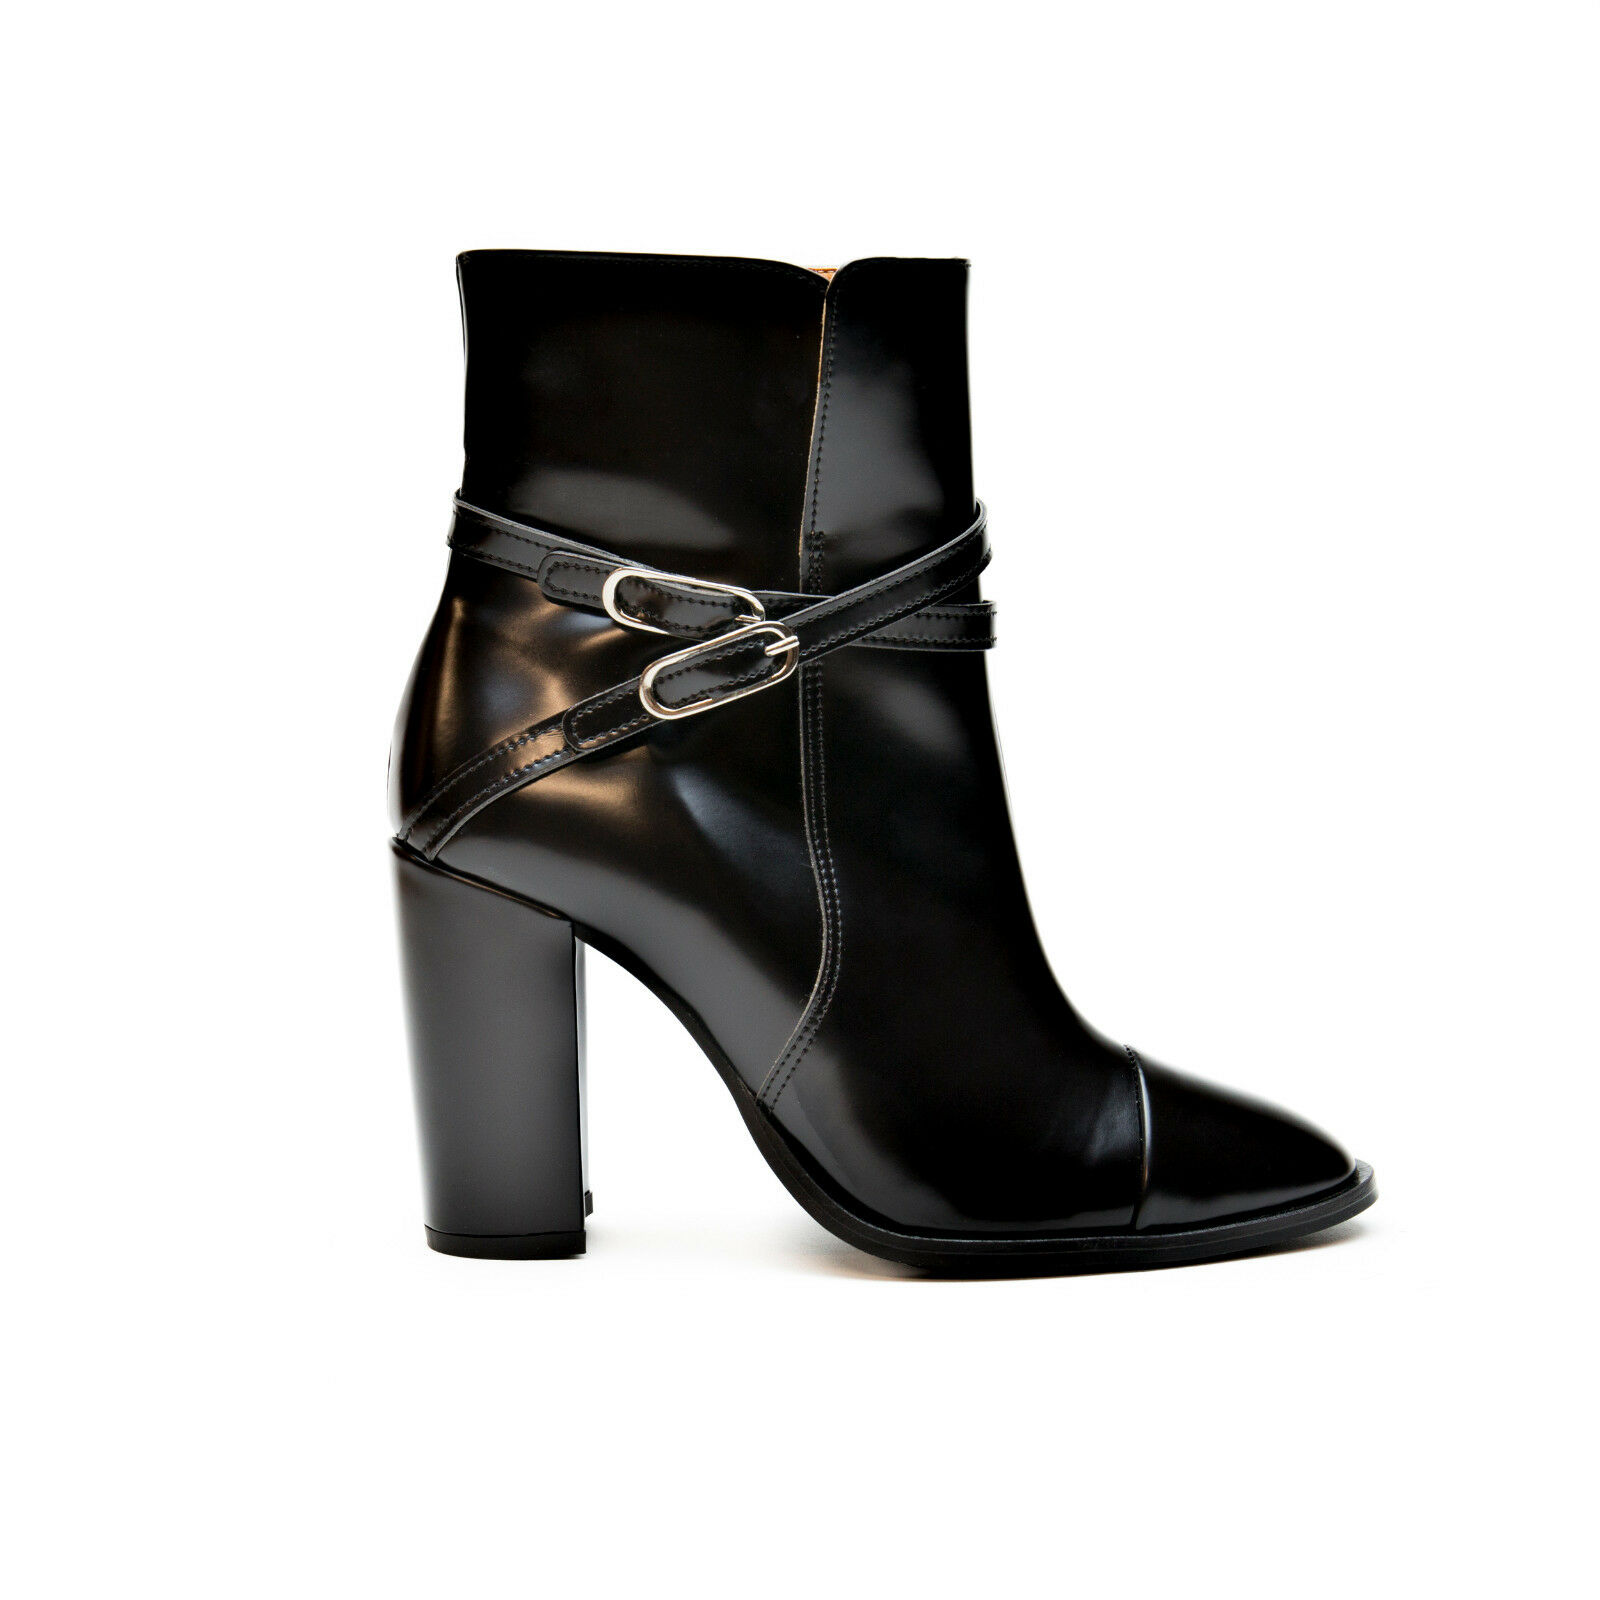 Nae - Vegan High and Heel Elegant Ankle Stiefel Microfiber Breathable and High Eco 2 Strips b7e185